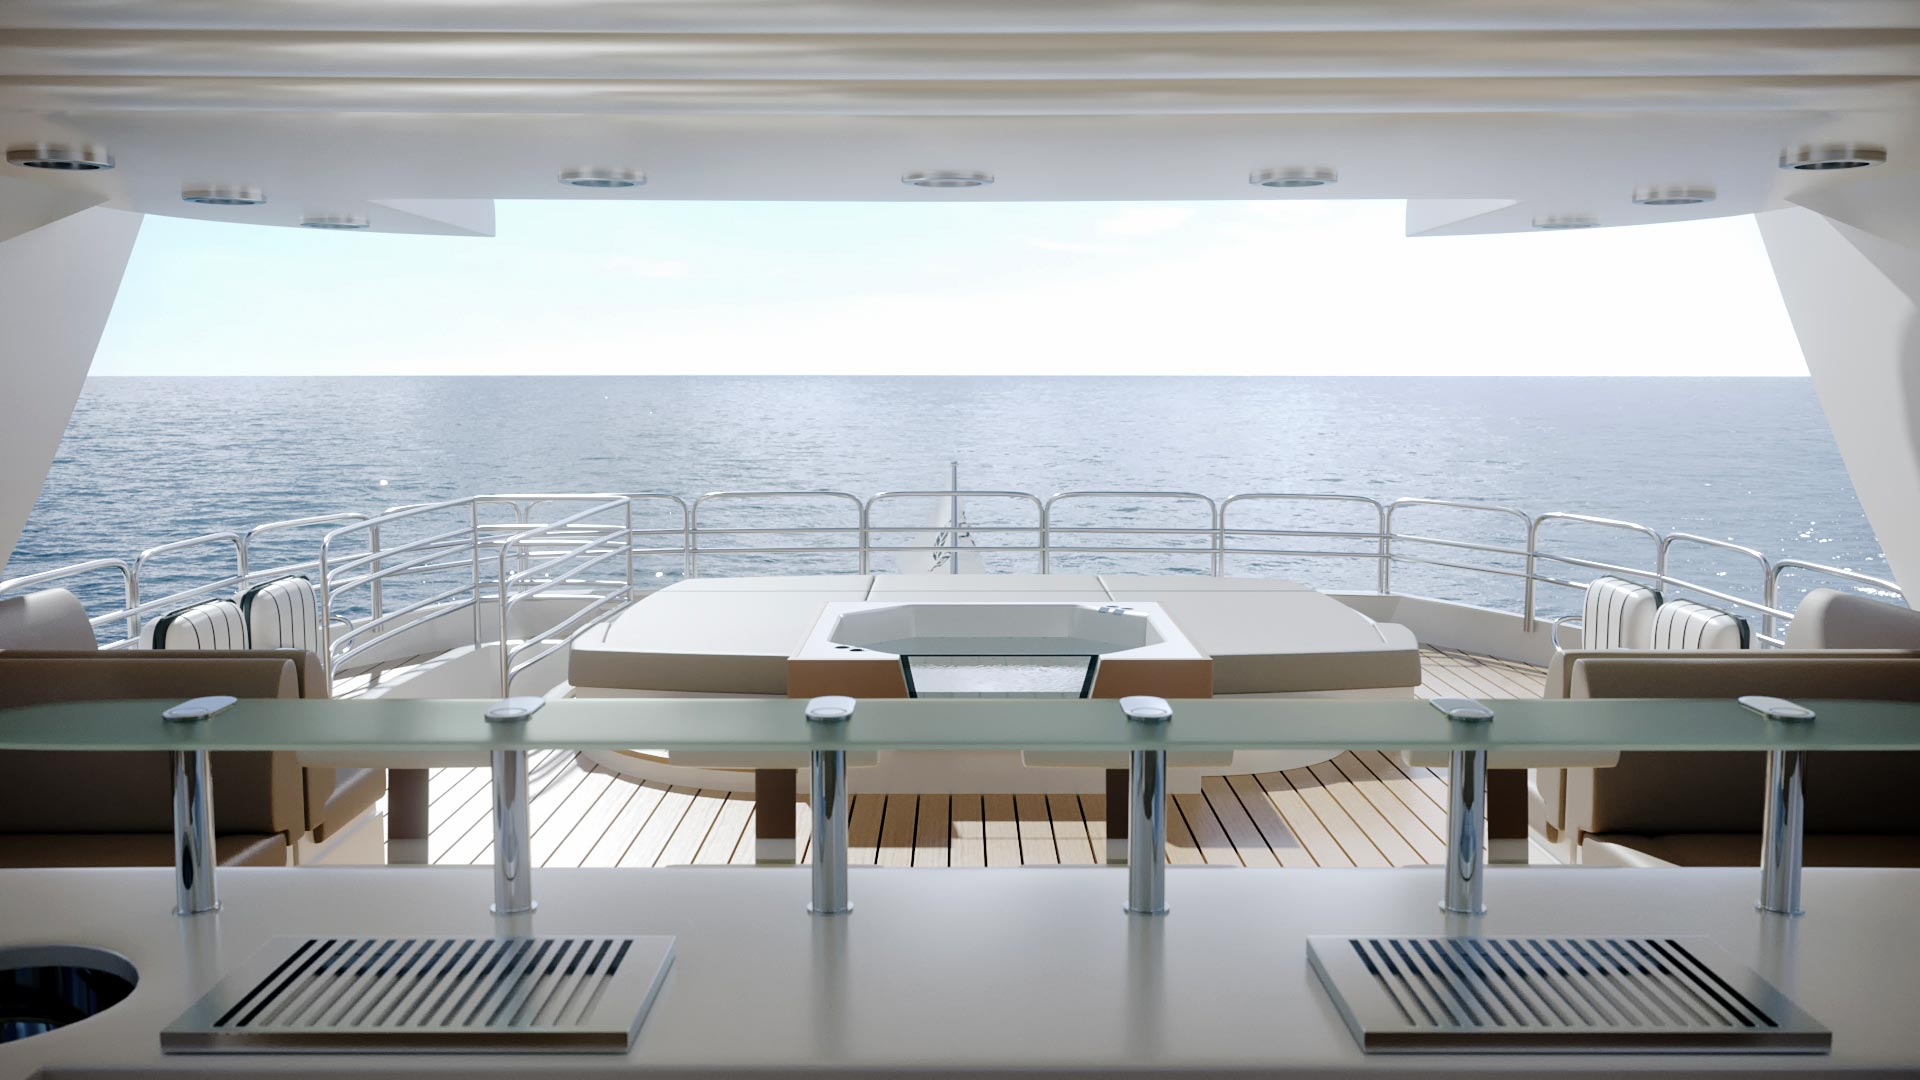 Modeling and 3D yacht rendering and surrounding environment